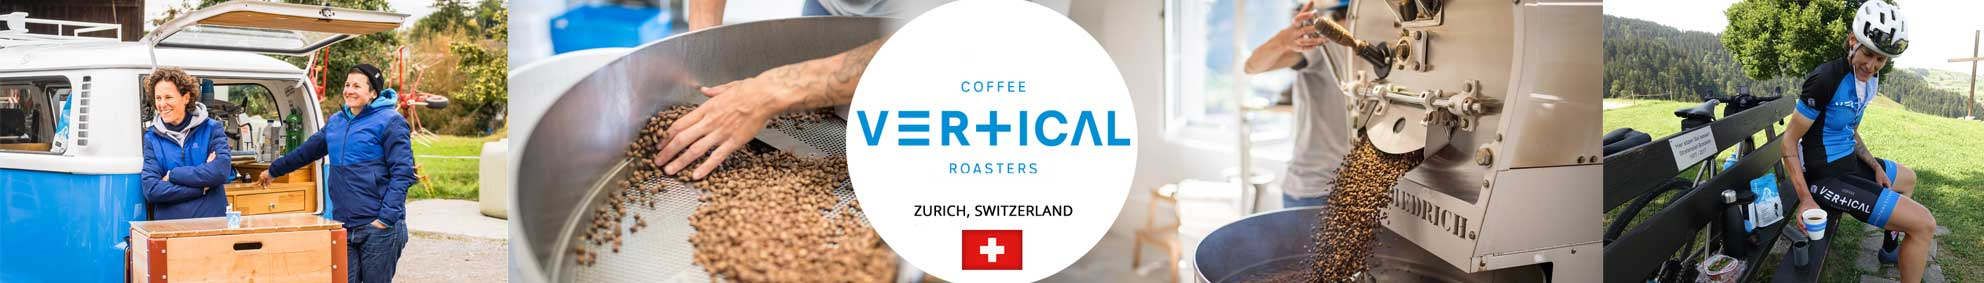 Vertical Coffee Zurich on UK Best Coffee Subscription and Gift Service